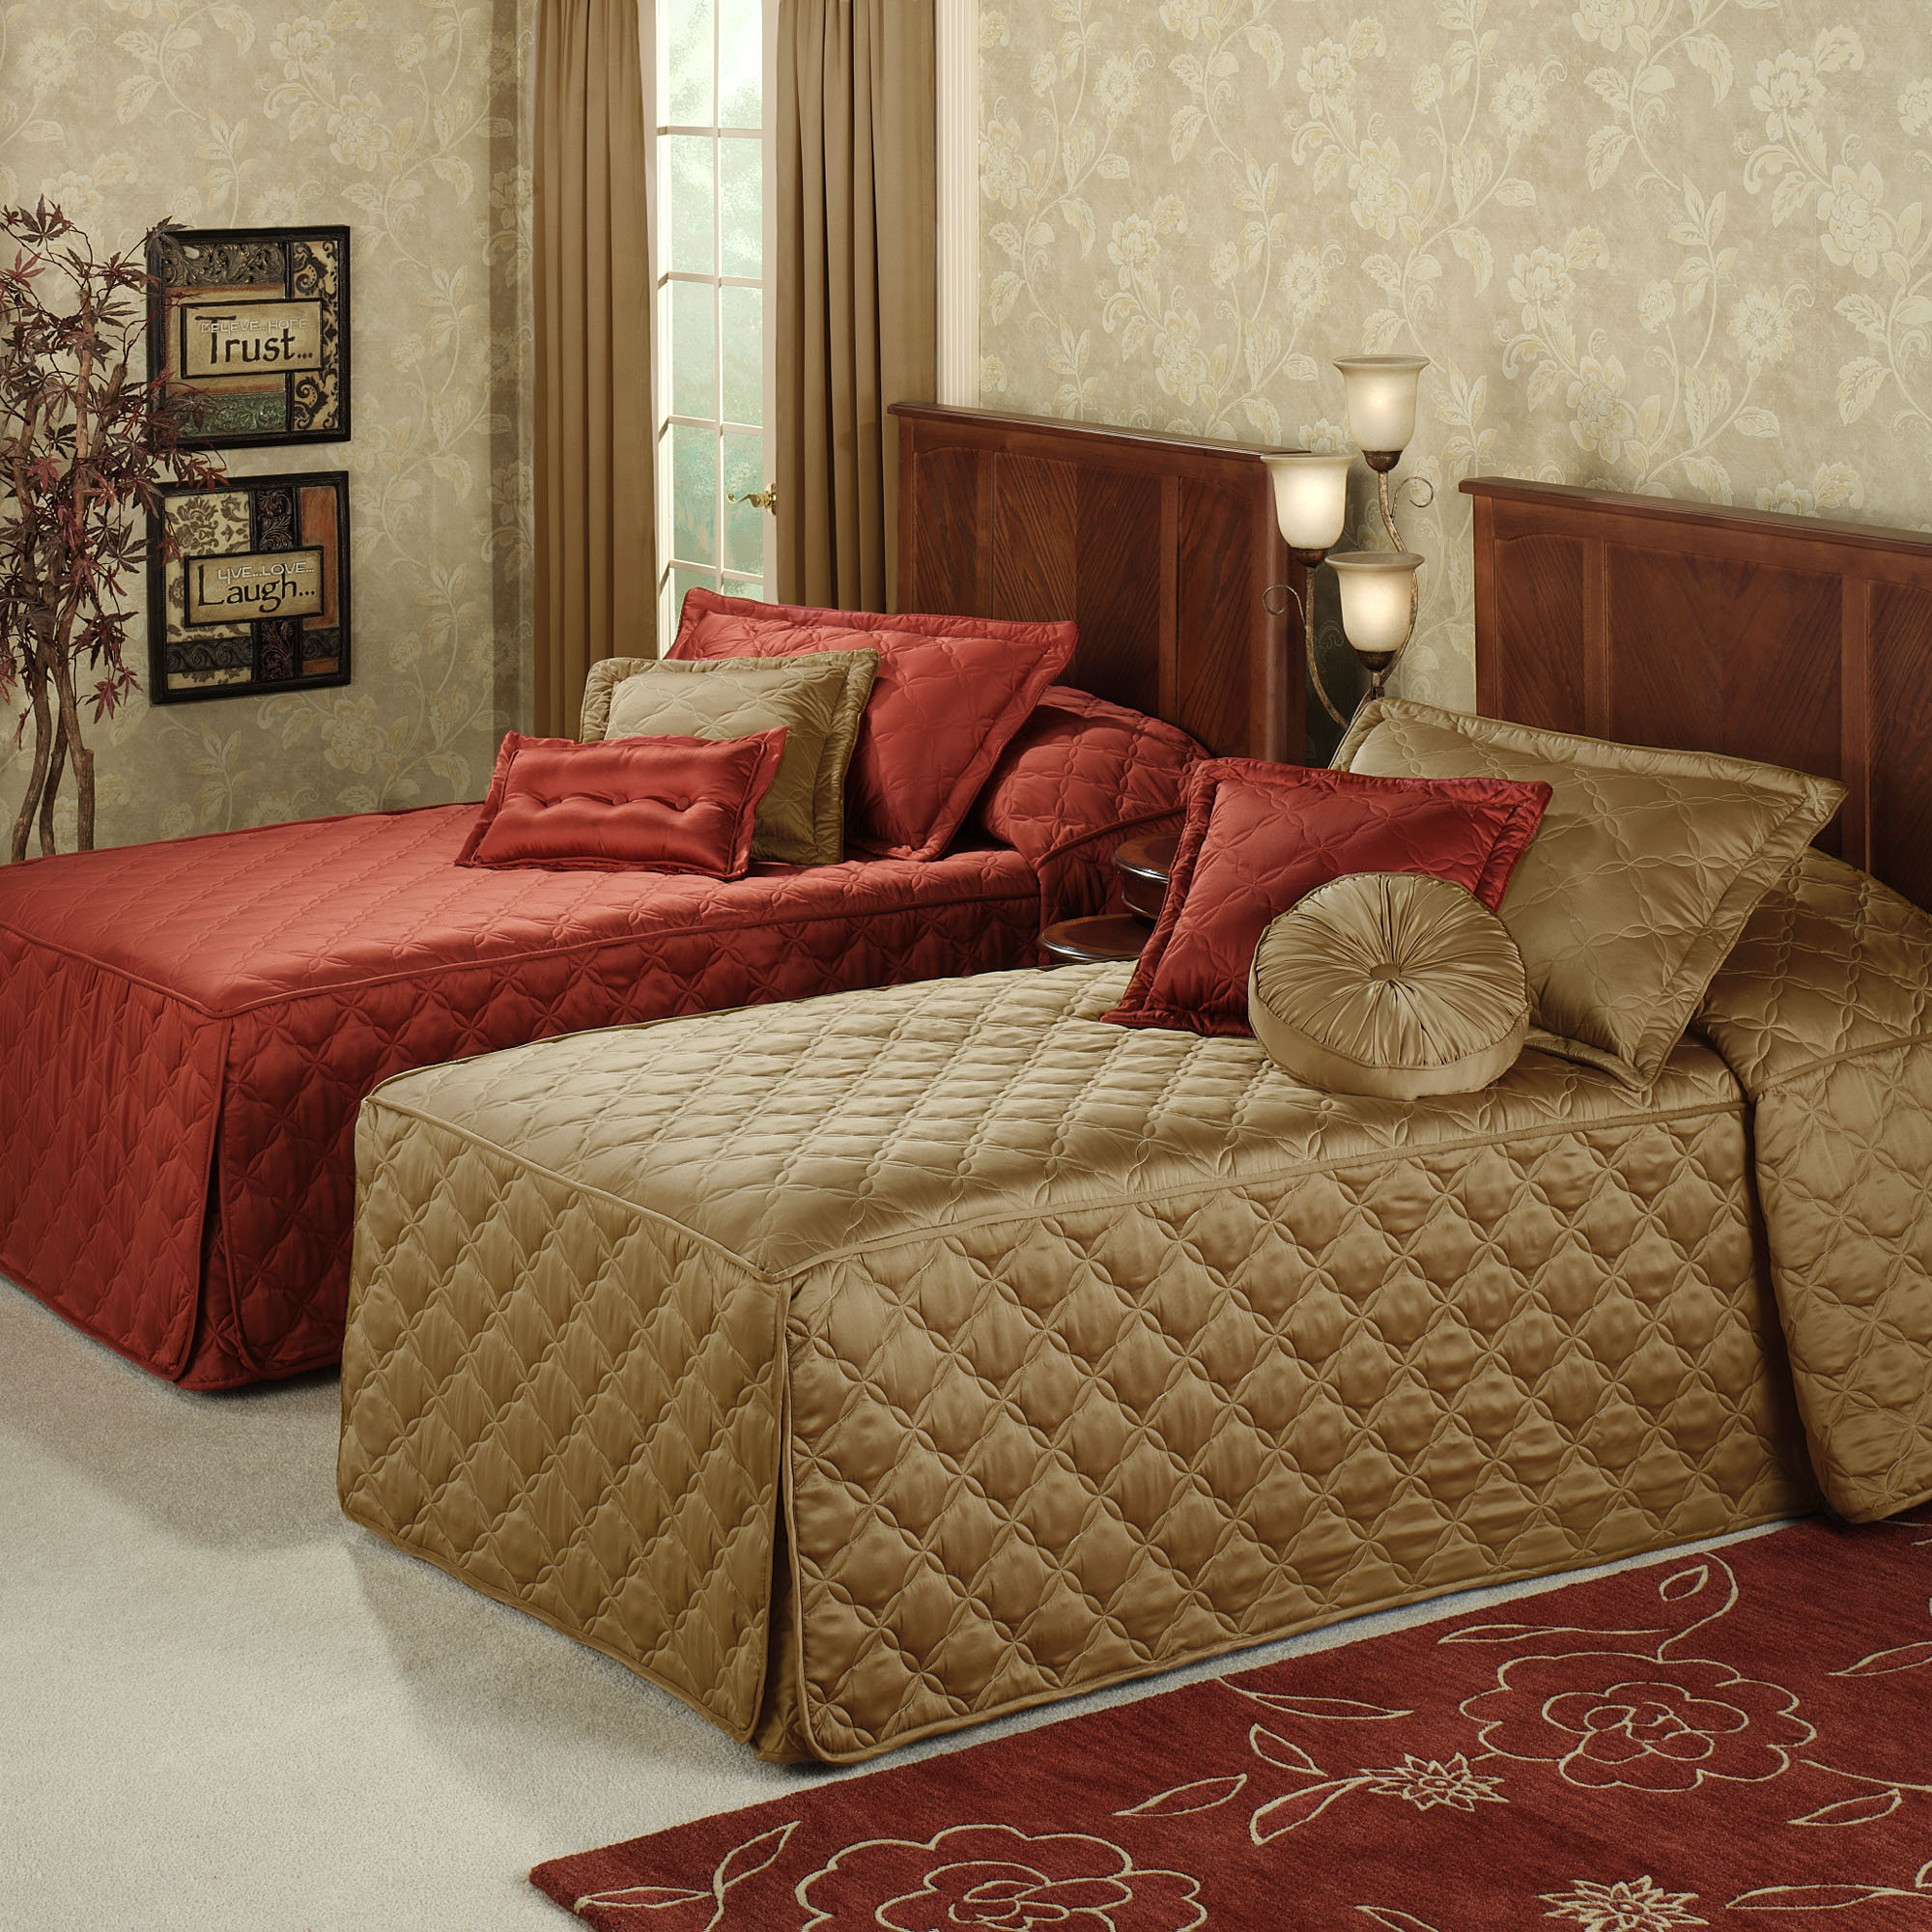 2000x2000px 7 Gorgeous Fitted Bedspread Picture in Bedroom